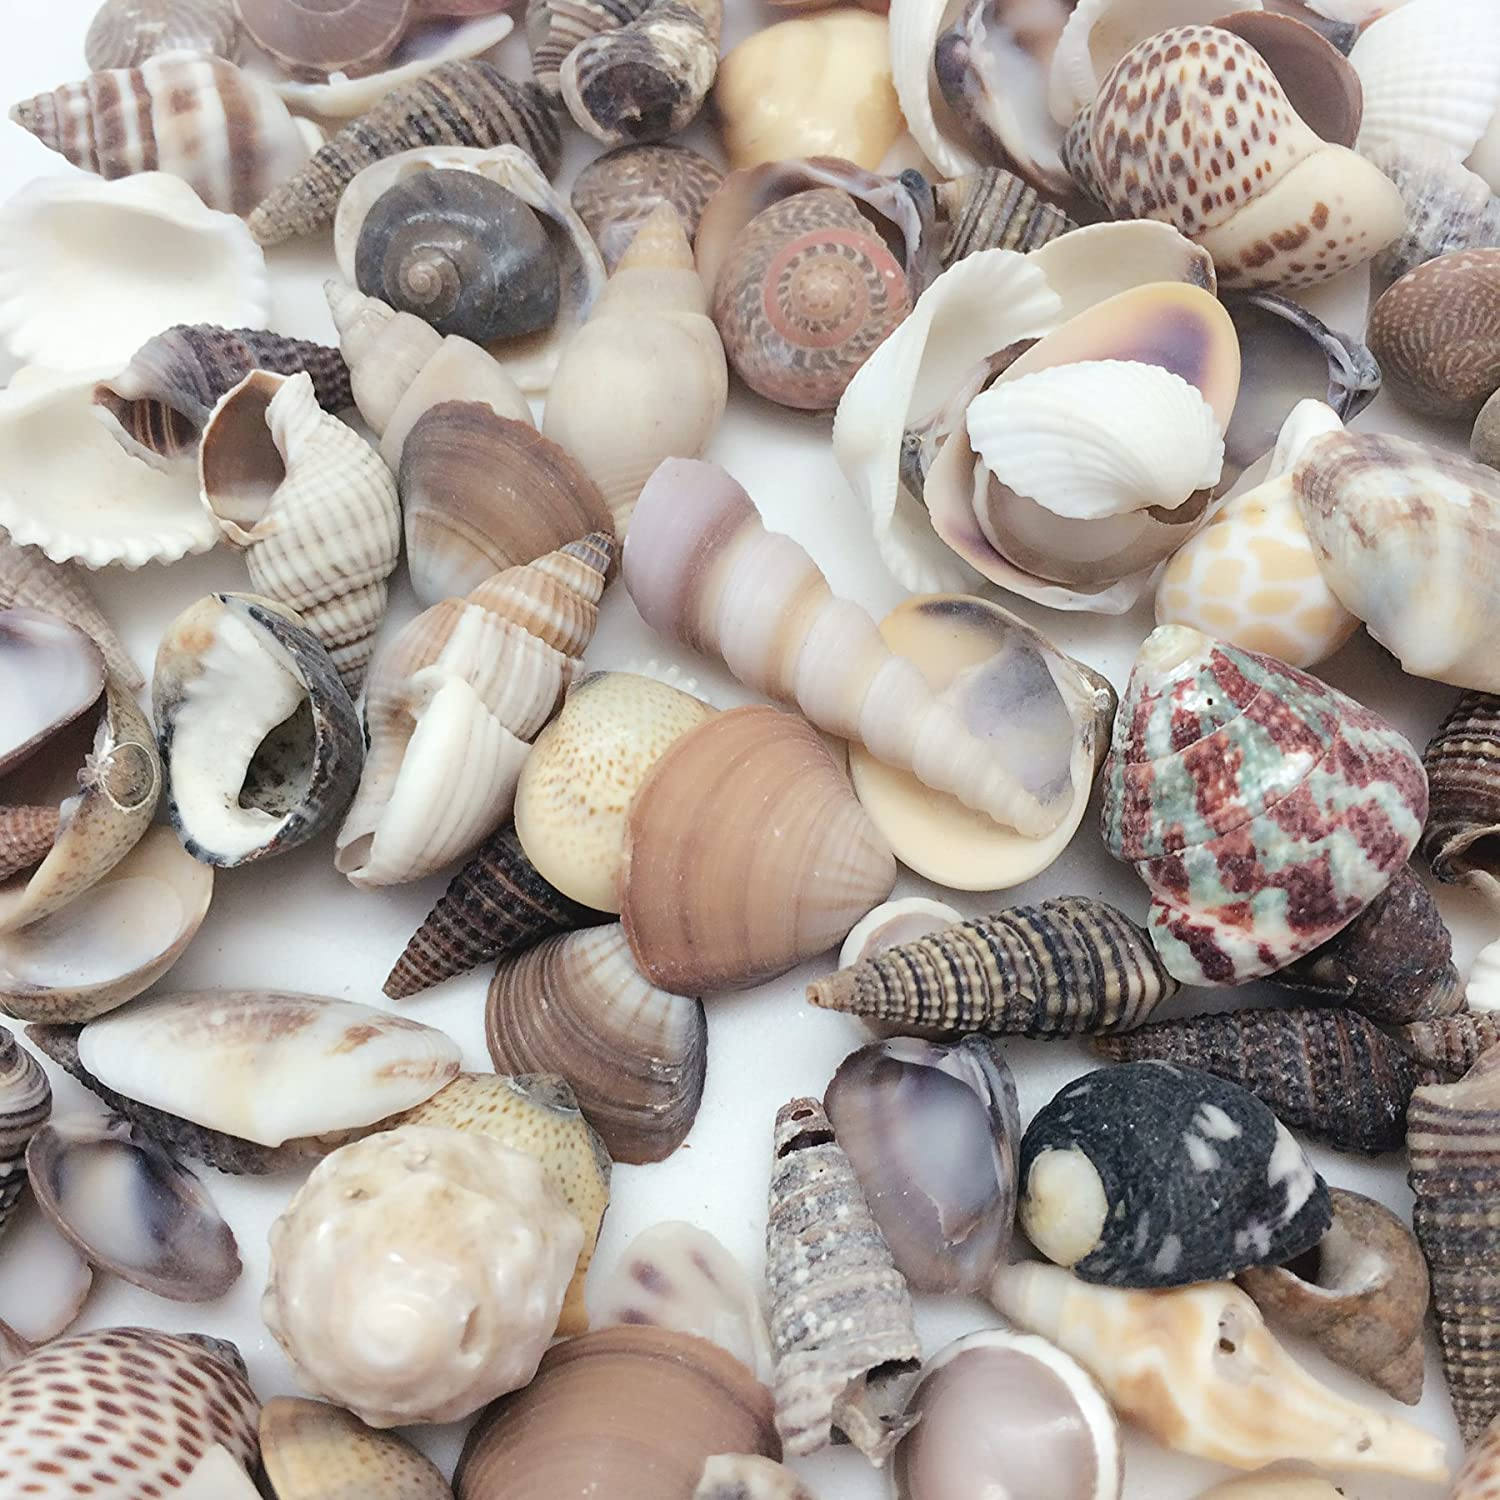 PEPPERLONELY India Natural Sea Shells Mixed, Small, 1/2 Inch to 1-1/2 Inch in Sizes, 8 oz, Apprx. 380PC+ Shells